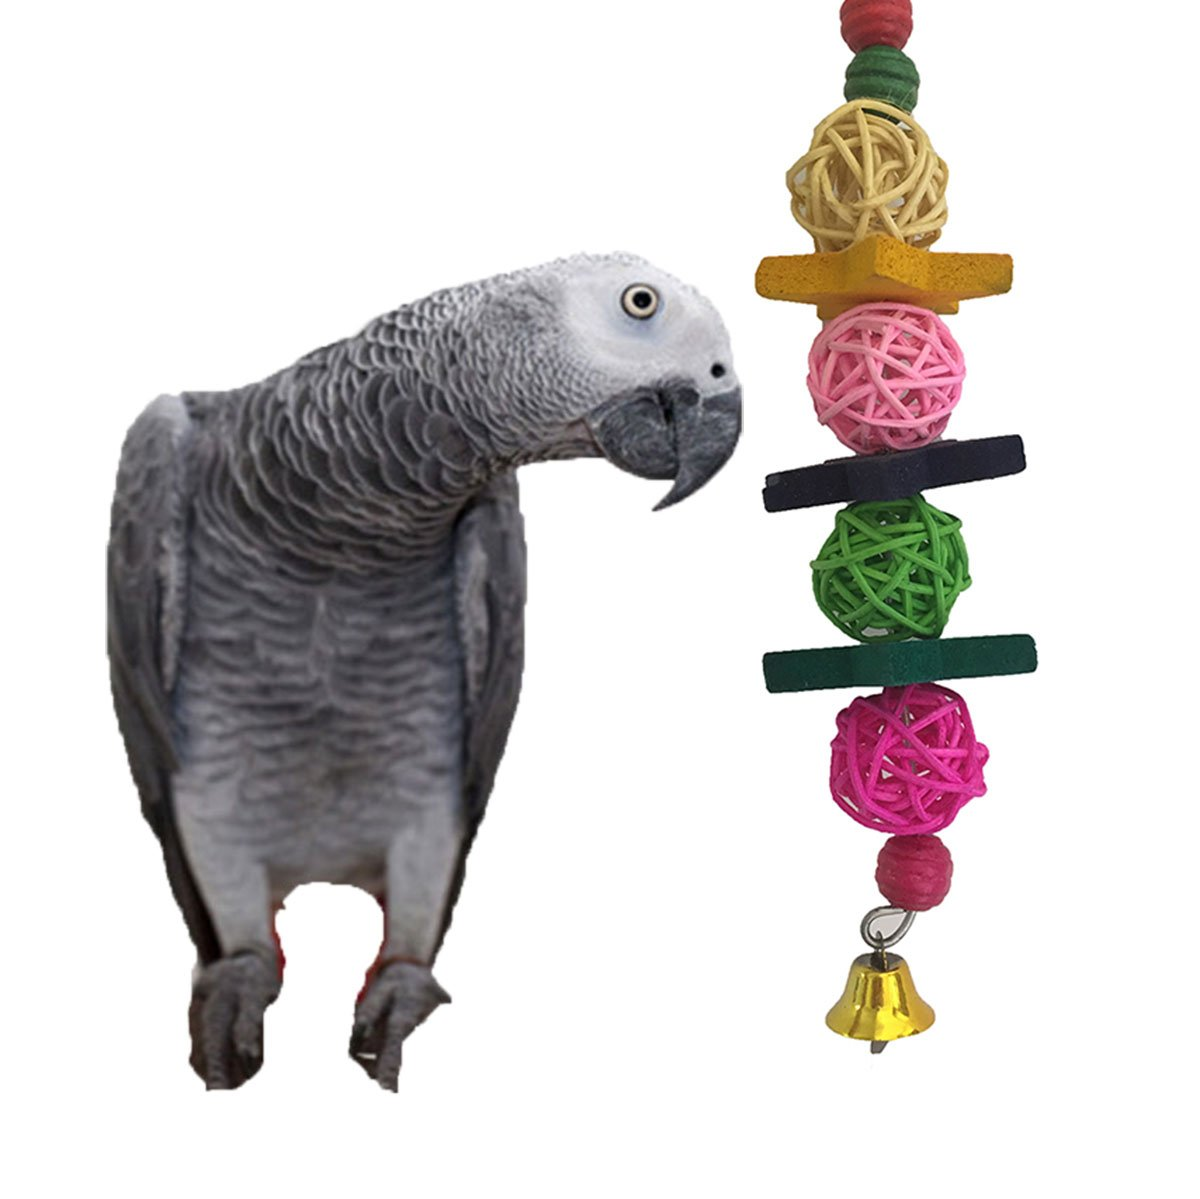 Keersi Colorful Balls Toy for Bird Parrot Macaw African Grey Budgie Parakeet Cockatiel Conure Lovebird Cage Bite Toy